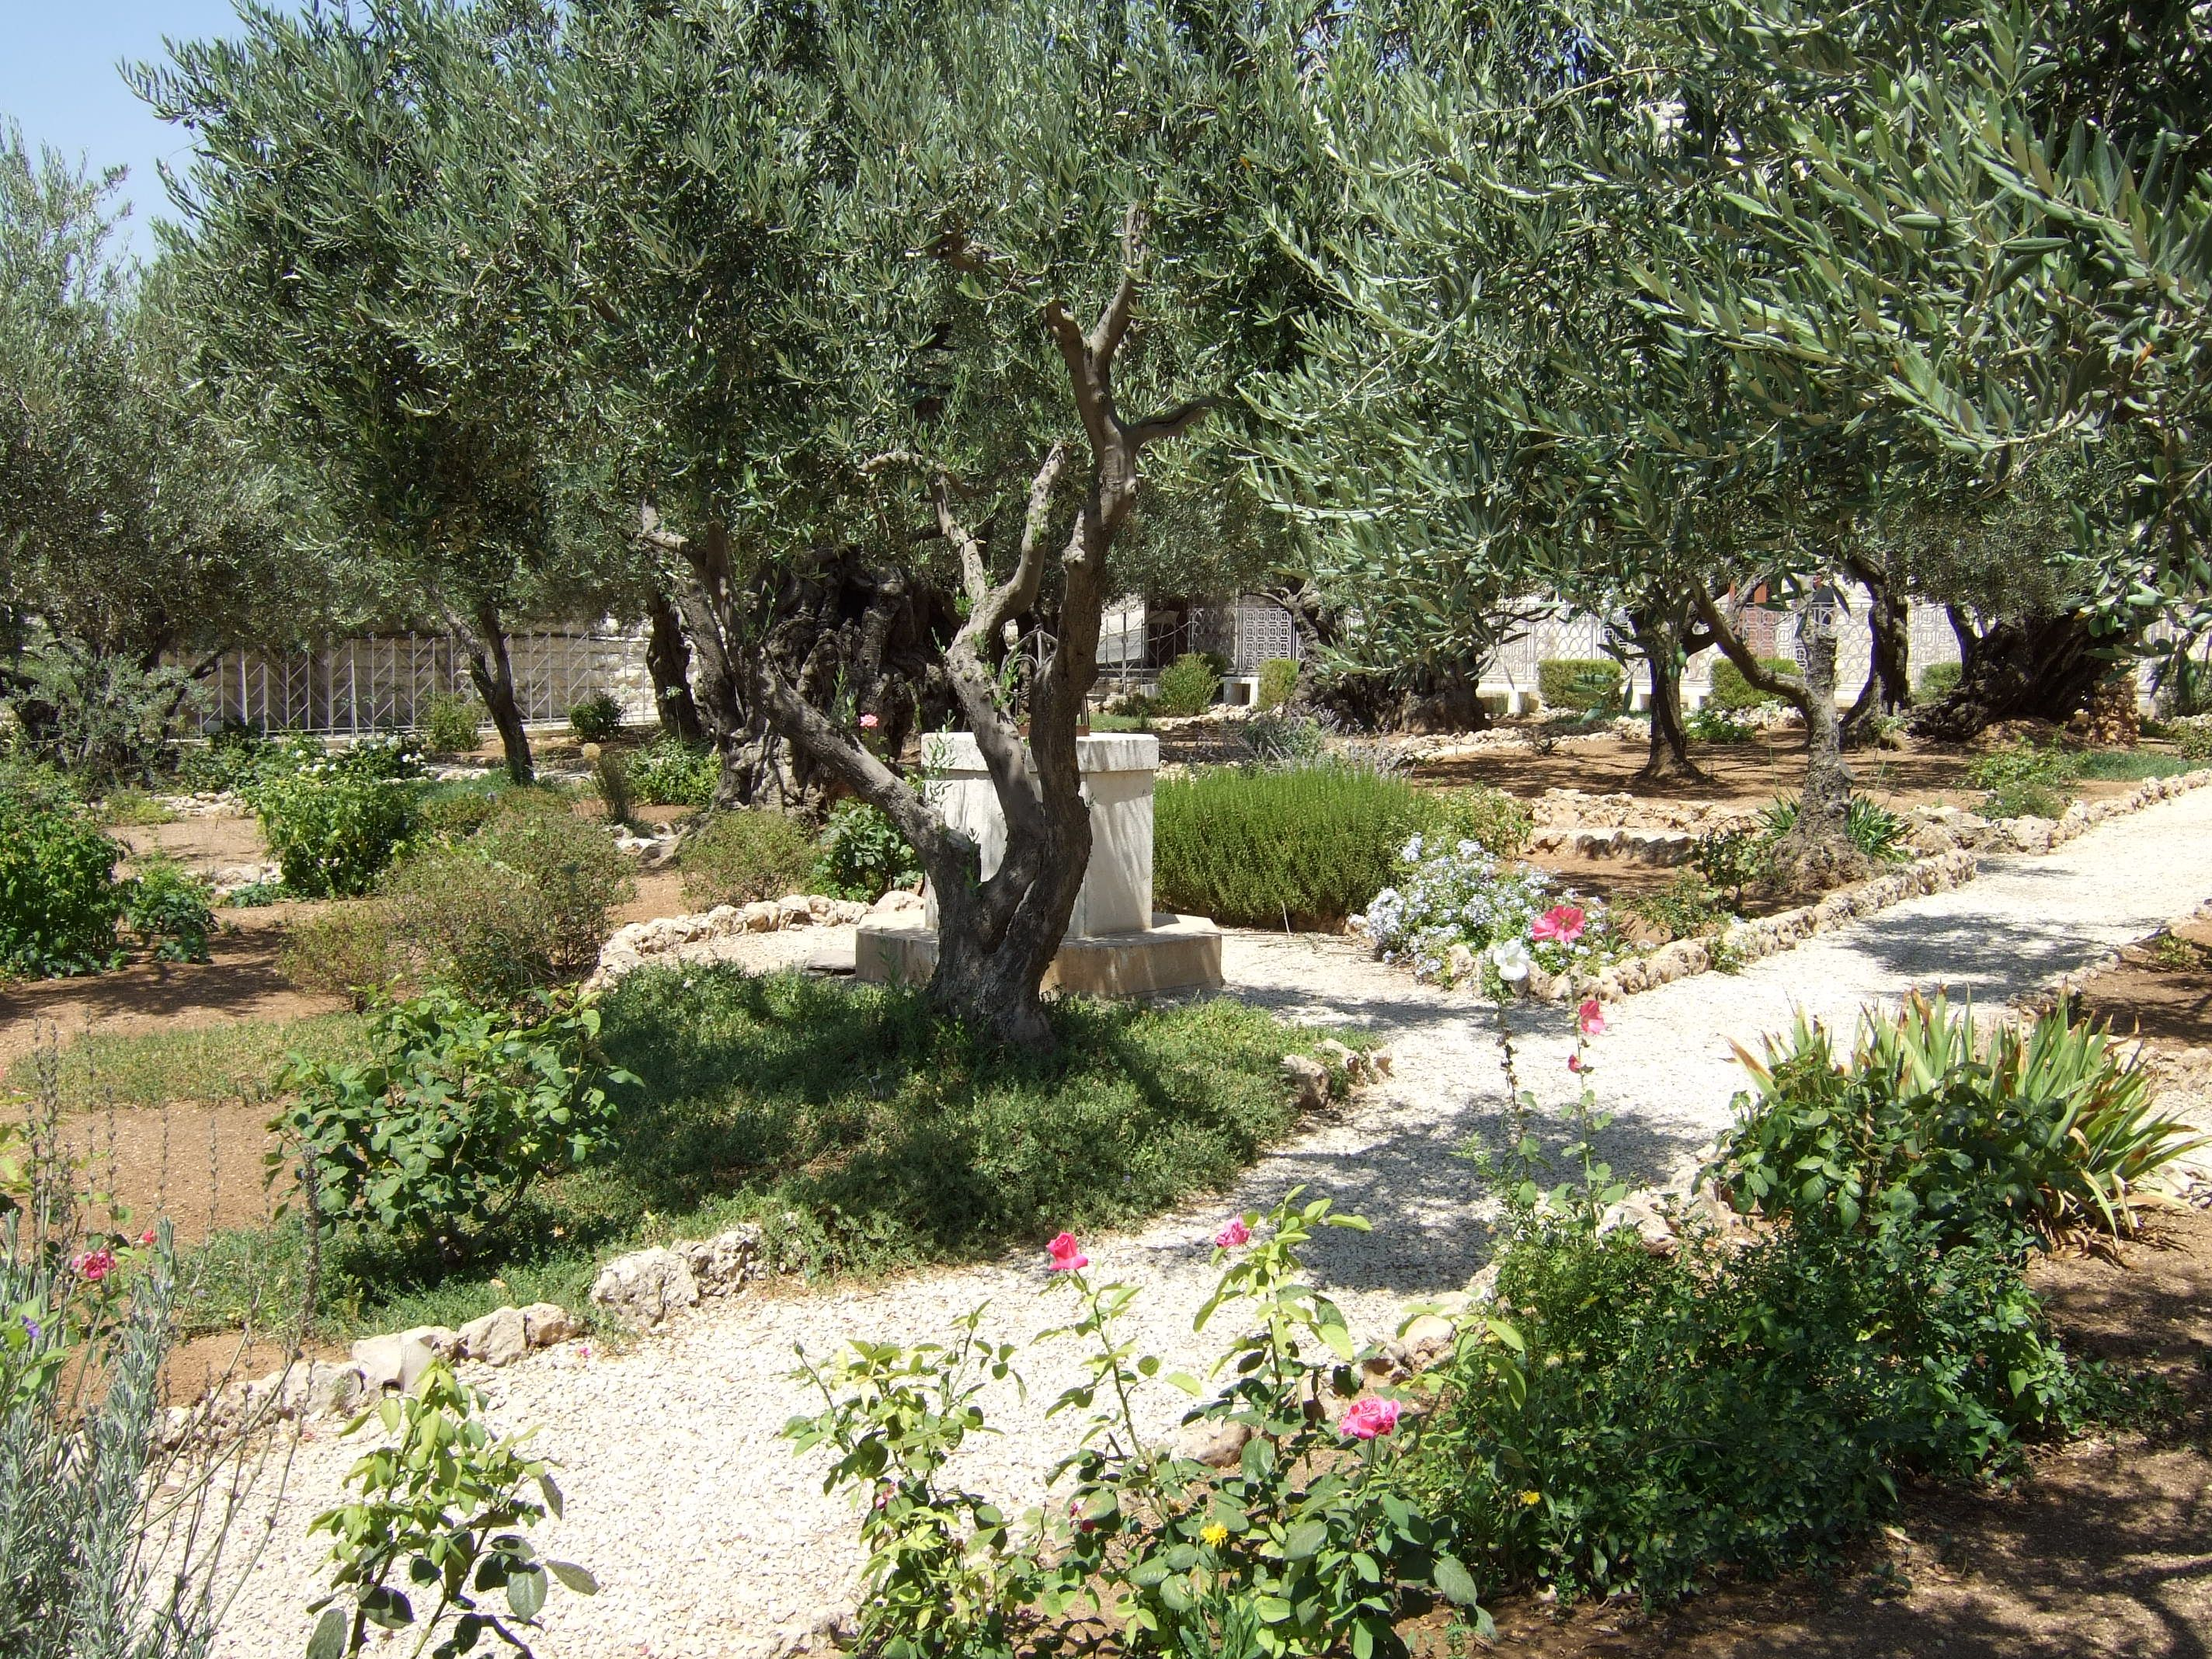 The land of milk and honey israel jerusalem and buckets for Age olive trees garden gethsemane